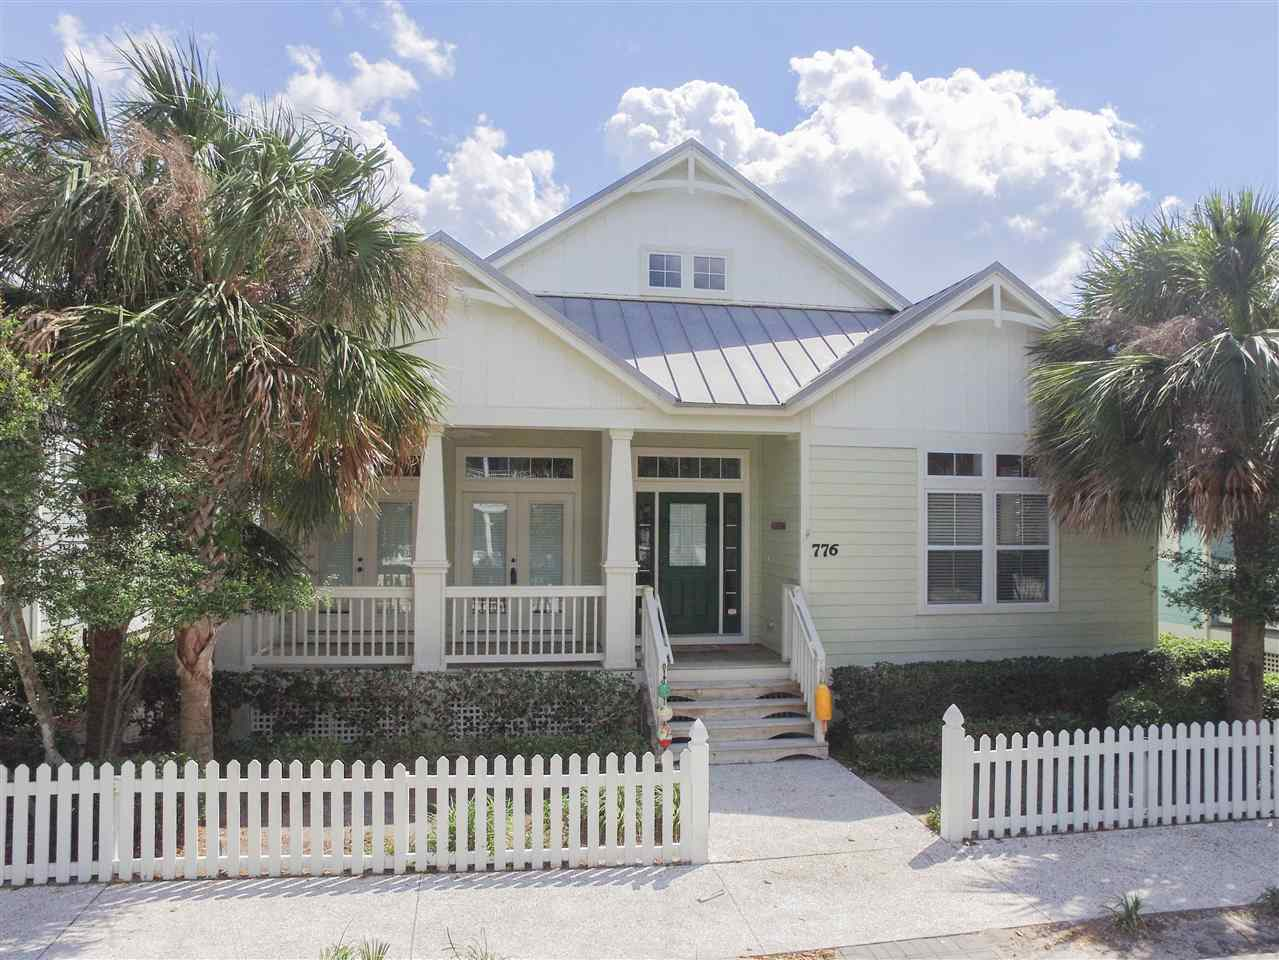 776 OCEAN PALM WAY, ST AUGUSTINE BEACH, FL 32080